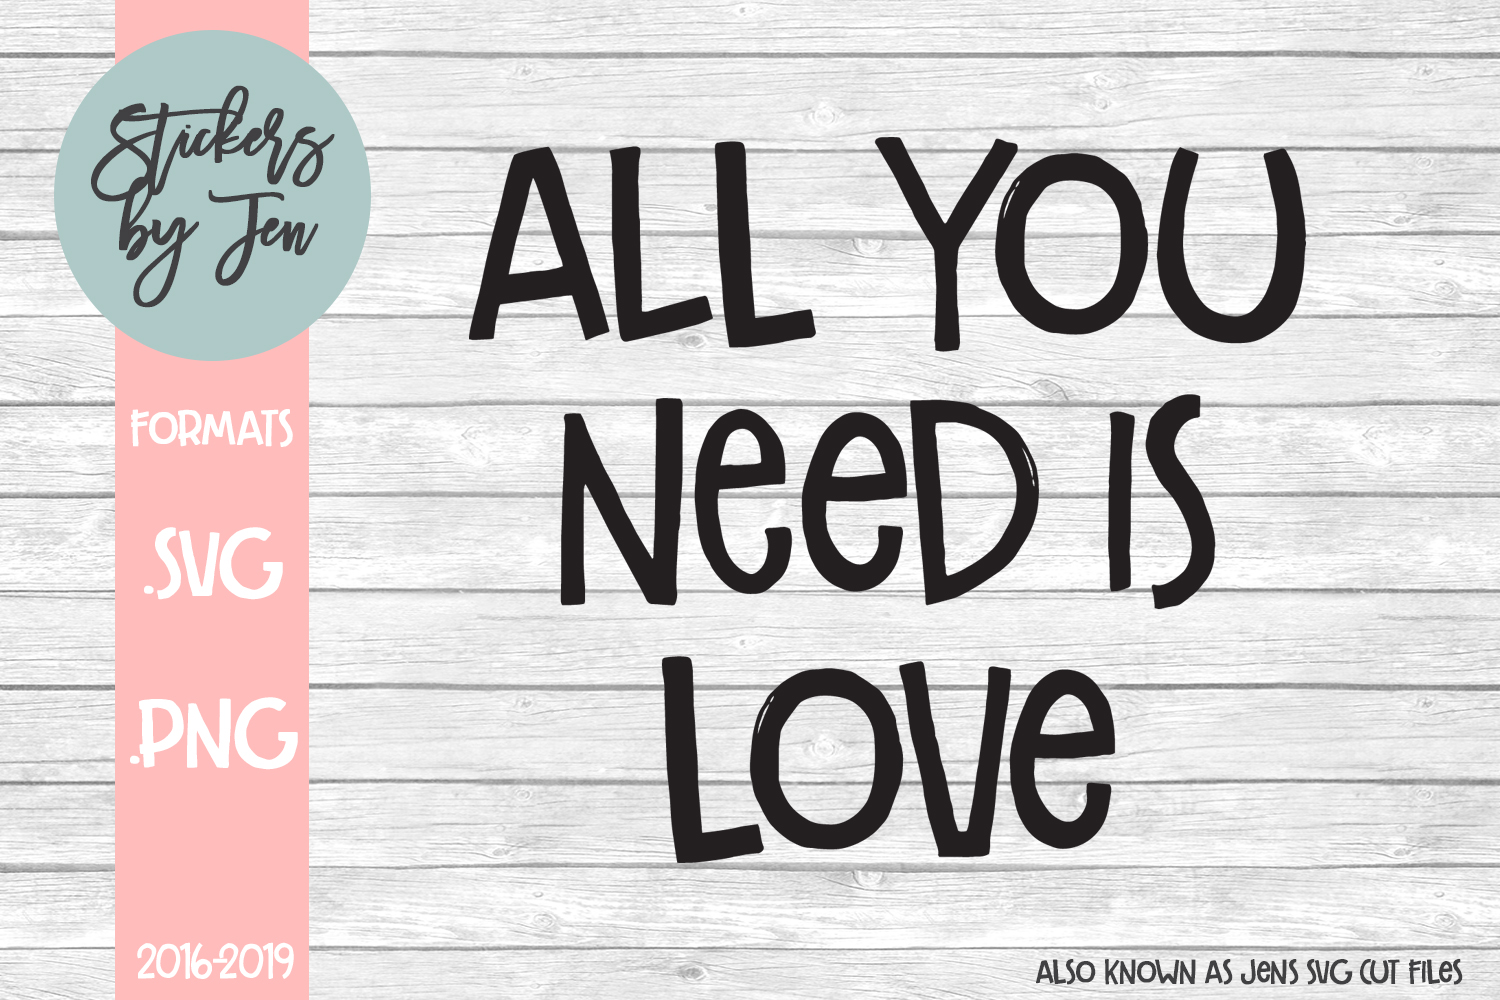 Download Free All You Need Is Love Svg Graphic By Stickers By Jennifer for Cricut Explore, Silhouette and other cutting machines.